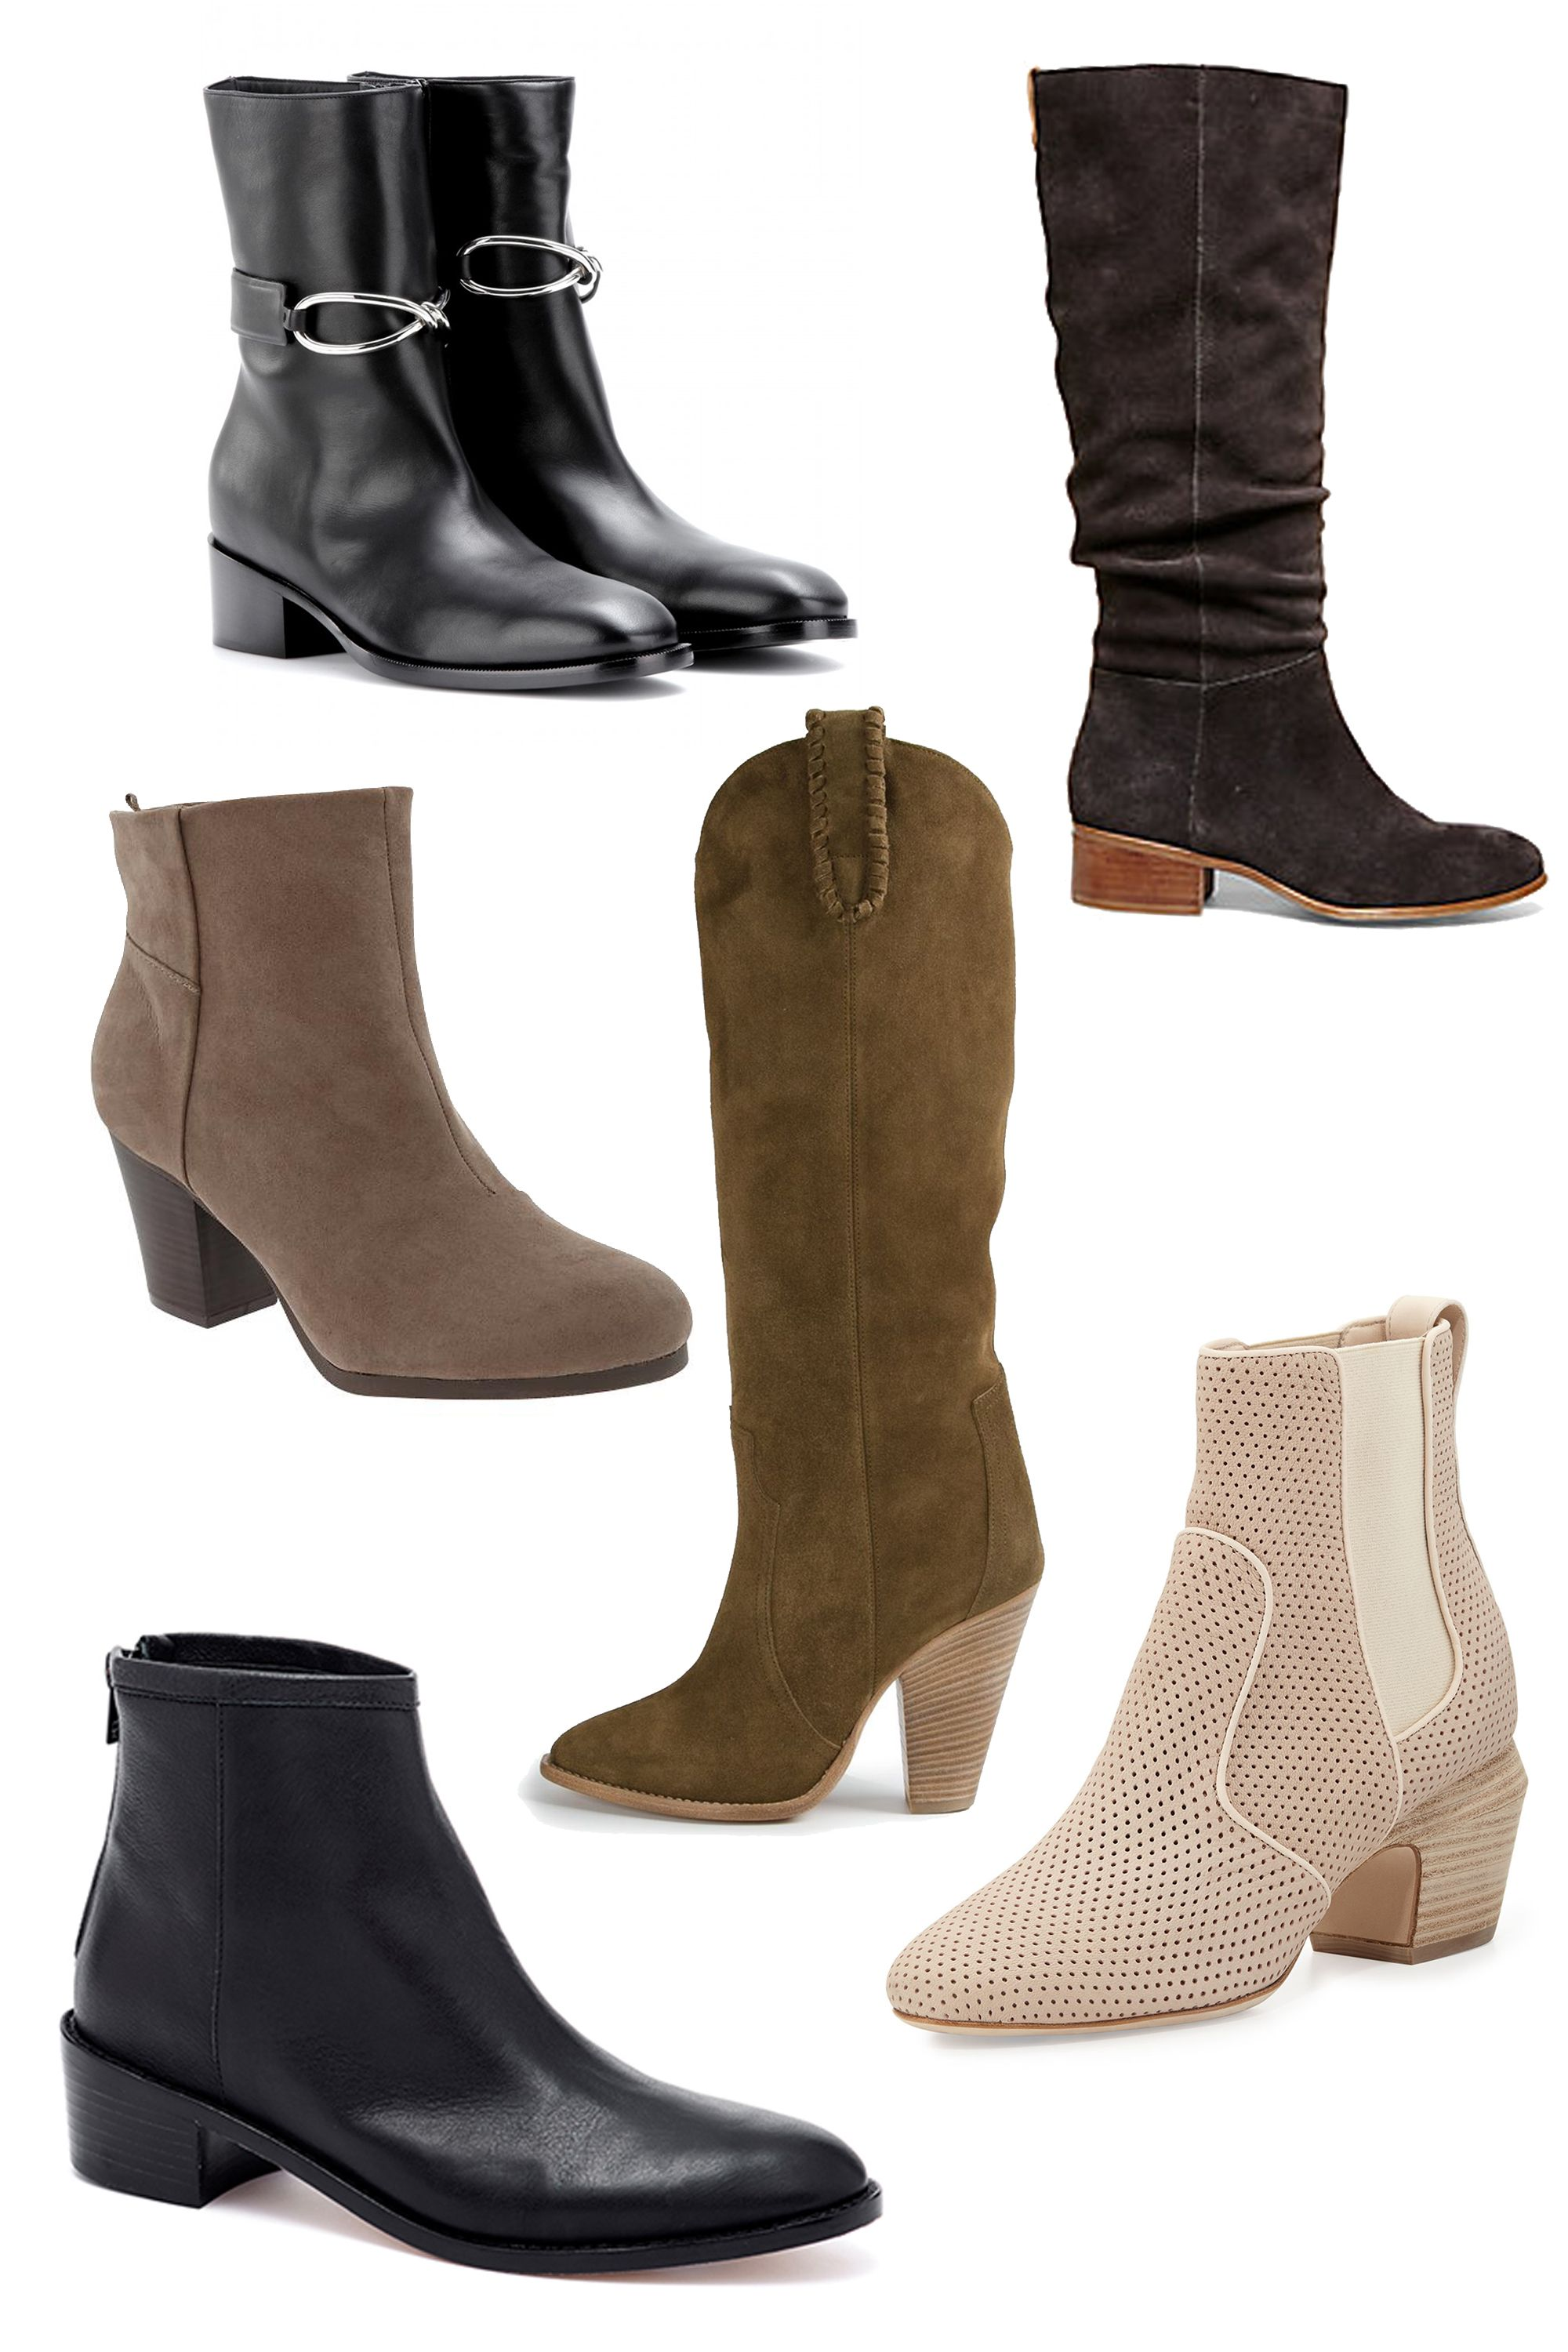 "(Left to right)  Balenciaga Leather Boots, $1,195; <a target=""_blank"" href=""http://www.mytheresa.com/en-us/leather-boots-242545.html"">mytheresa.com</a>  Steve Madden Pondrosa Boots, $130; <a target=""_blank"" href=""http://www.stevemadden.com/product/WOMENS/Boots/PONDROSA/c/2163/sc/2211/179486.uts?sortByColumnName=Relevance&selectedColor=TAUPE-SUEDE&$MR-THUMB$"">stevemadden.com</a>  Old Navy Faux-Suede Ankle Boots, $40; <a target=""_blank"" href=""http://oldnavy.gap.com/browse/product.do?cid=97855&vid=1&pid=978719012 "">oldnavy.com</a>  Isabel Marant Étoile Knee-High Boots, $650; <a target=""_blank"" href=""http://www.farfetch.com/shopping/women/isabel-marant-etoile-etoile-knee-high-boots-item-10898120.aspx?storeid=9727&ffref=lp_23_"">farfetch.com</a>  Fendi Perforated Ankle Boot, $1,150; <a target=""_blank"" href=""http://www.bergdorfgoodman.com/Fendi-Perforated-Leather-Ankle-Boot-Nude/prod101910024_cat379627__/p.prod?icid=&searchType=EndecaDrivenCat&rte=%252Fcategory.service%253FitemId%253Dcat379627%2526pageSize%253D120%2526No%253D120%2526Ns%253DPCS_SORT%2526refinements%253D&eItemId=prod101910024&cmCat=product"">bergdorfgoodman.com</a>  Loeffler Randall Felix Stacked Heel Bootie, $395; <a target=""_blank"" href=""http://www.loefflerrandall.com/LRProduct.aspx?ProductID=988&CategoryID=10 "">loefflerrandall.com</a>"